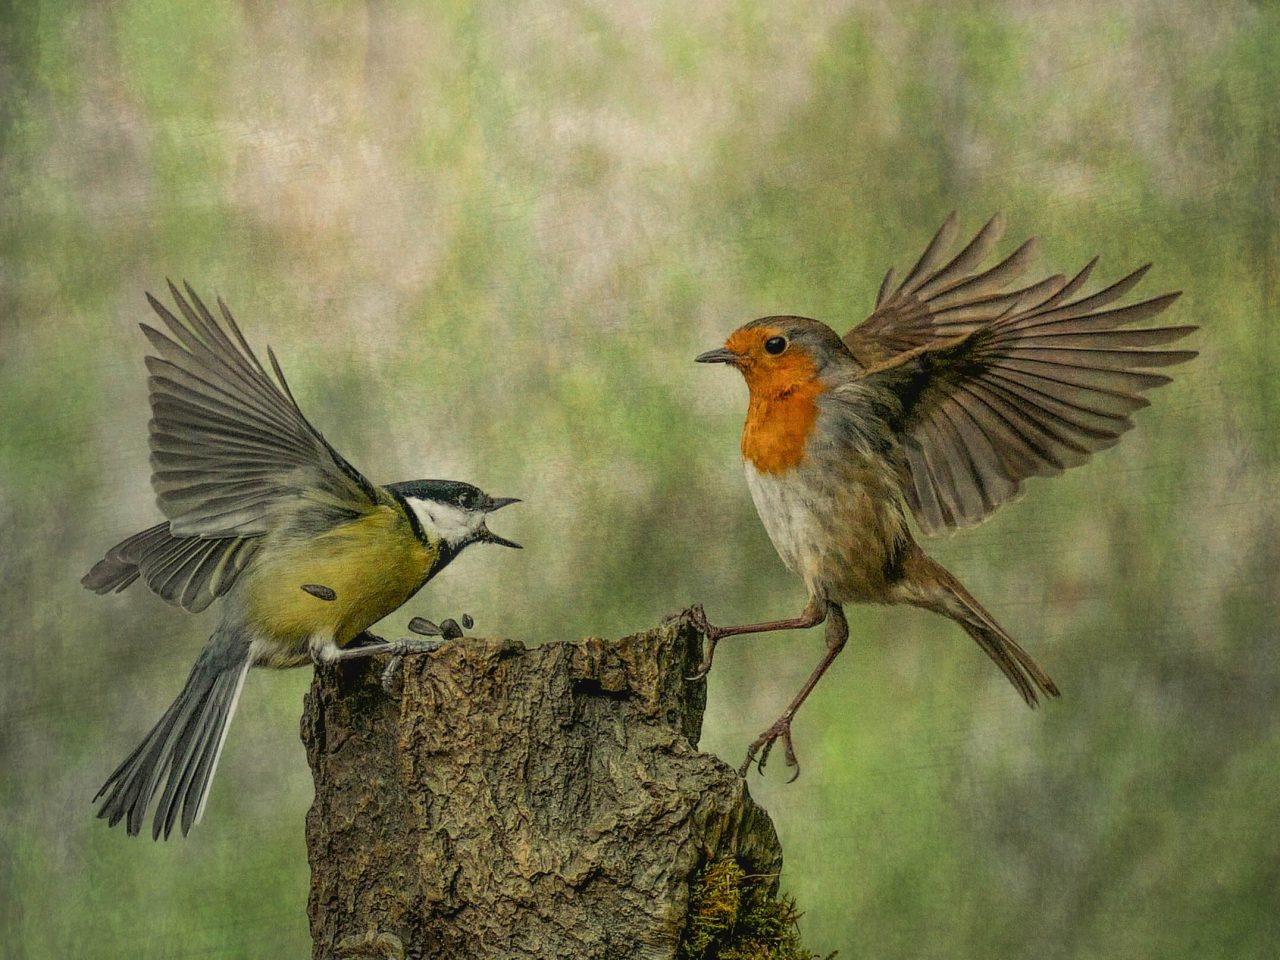 Two birds in a dispute